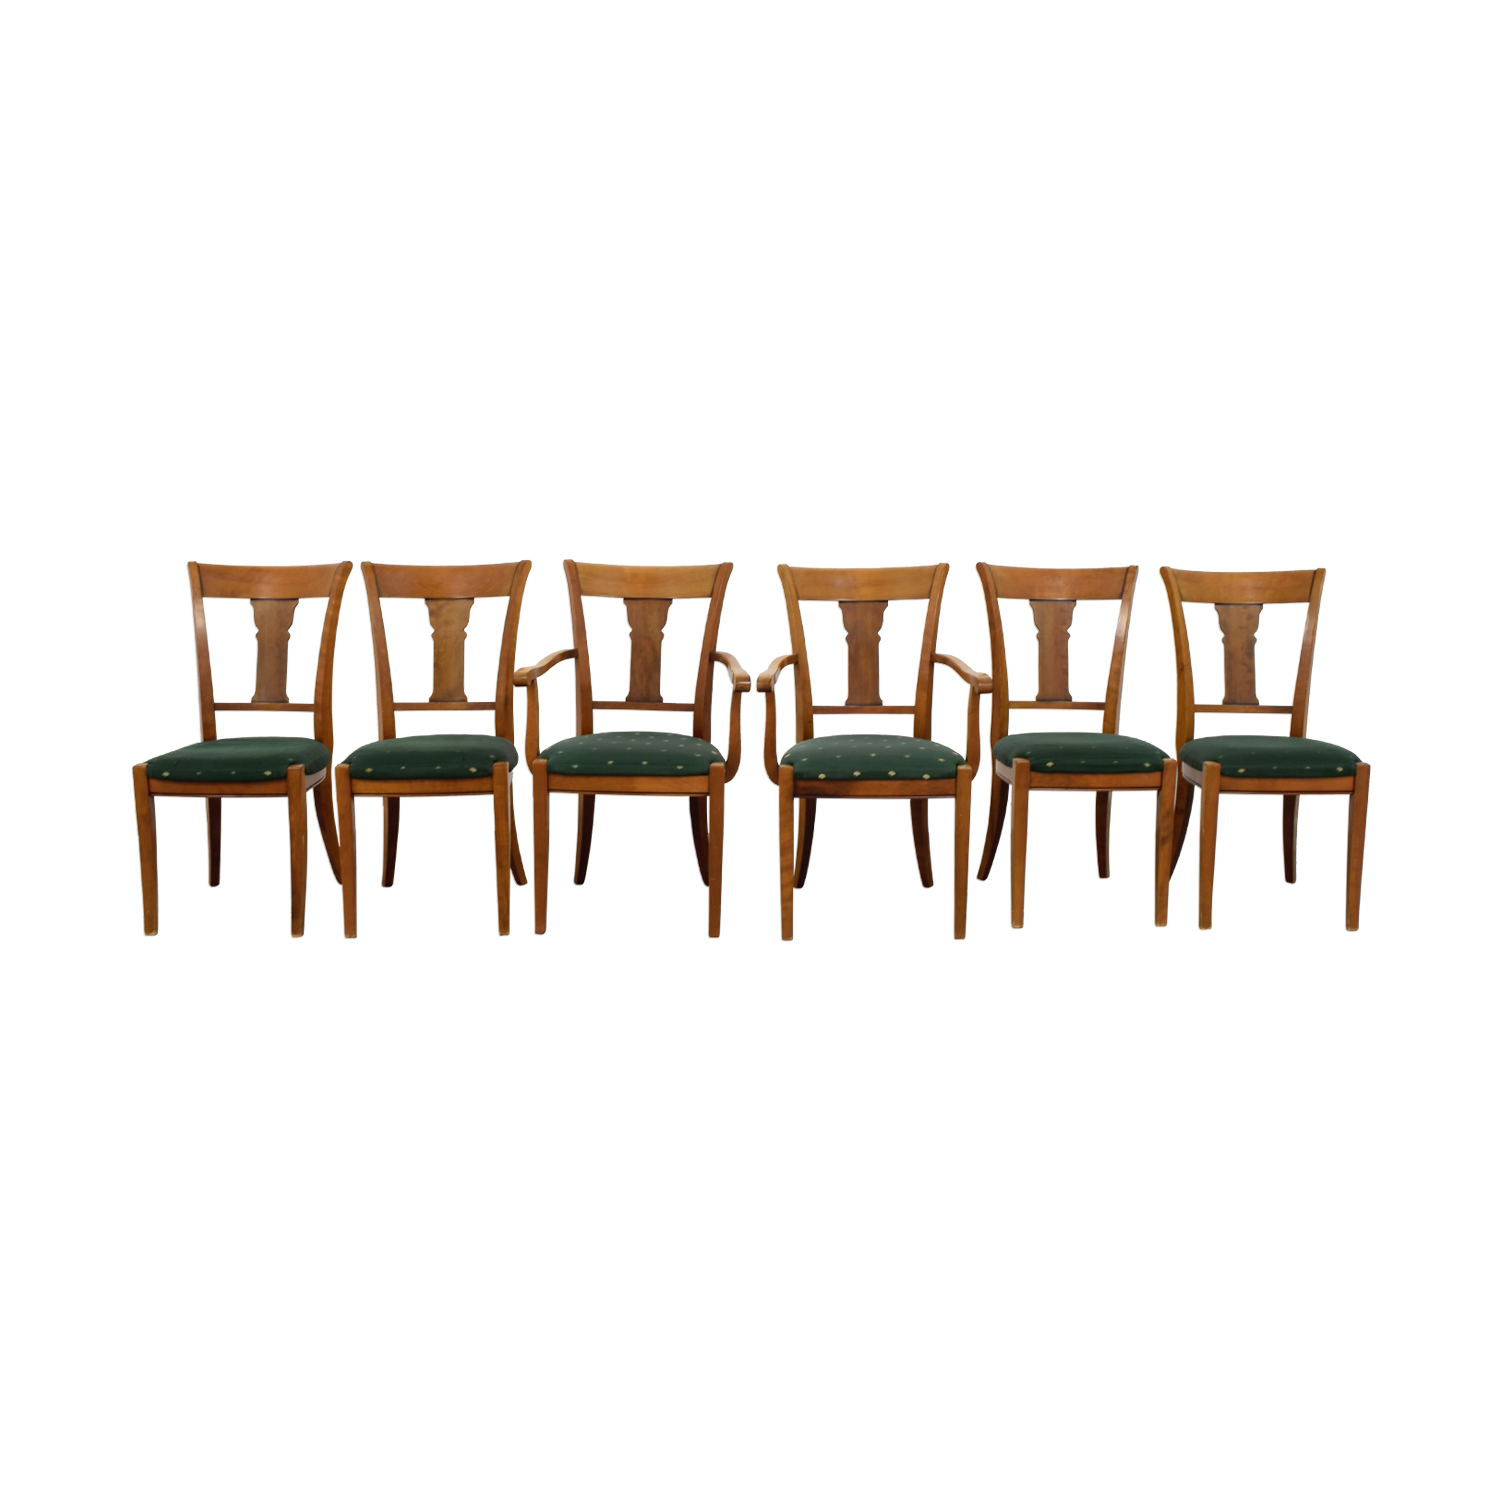 Grange Grange Rochambeau Green Upholstered Dining Chairs